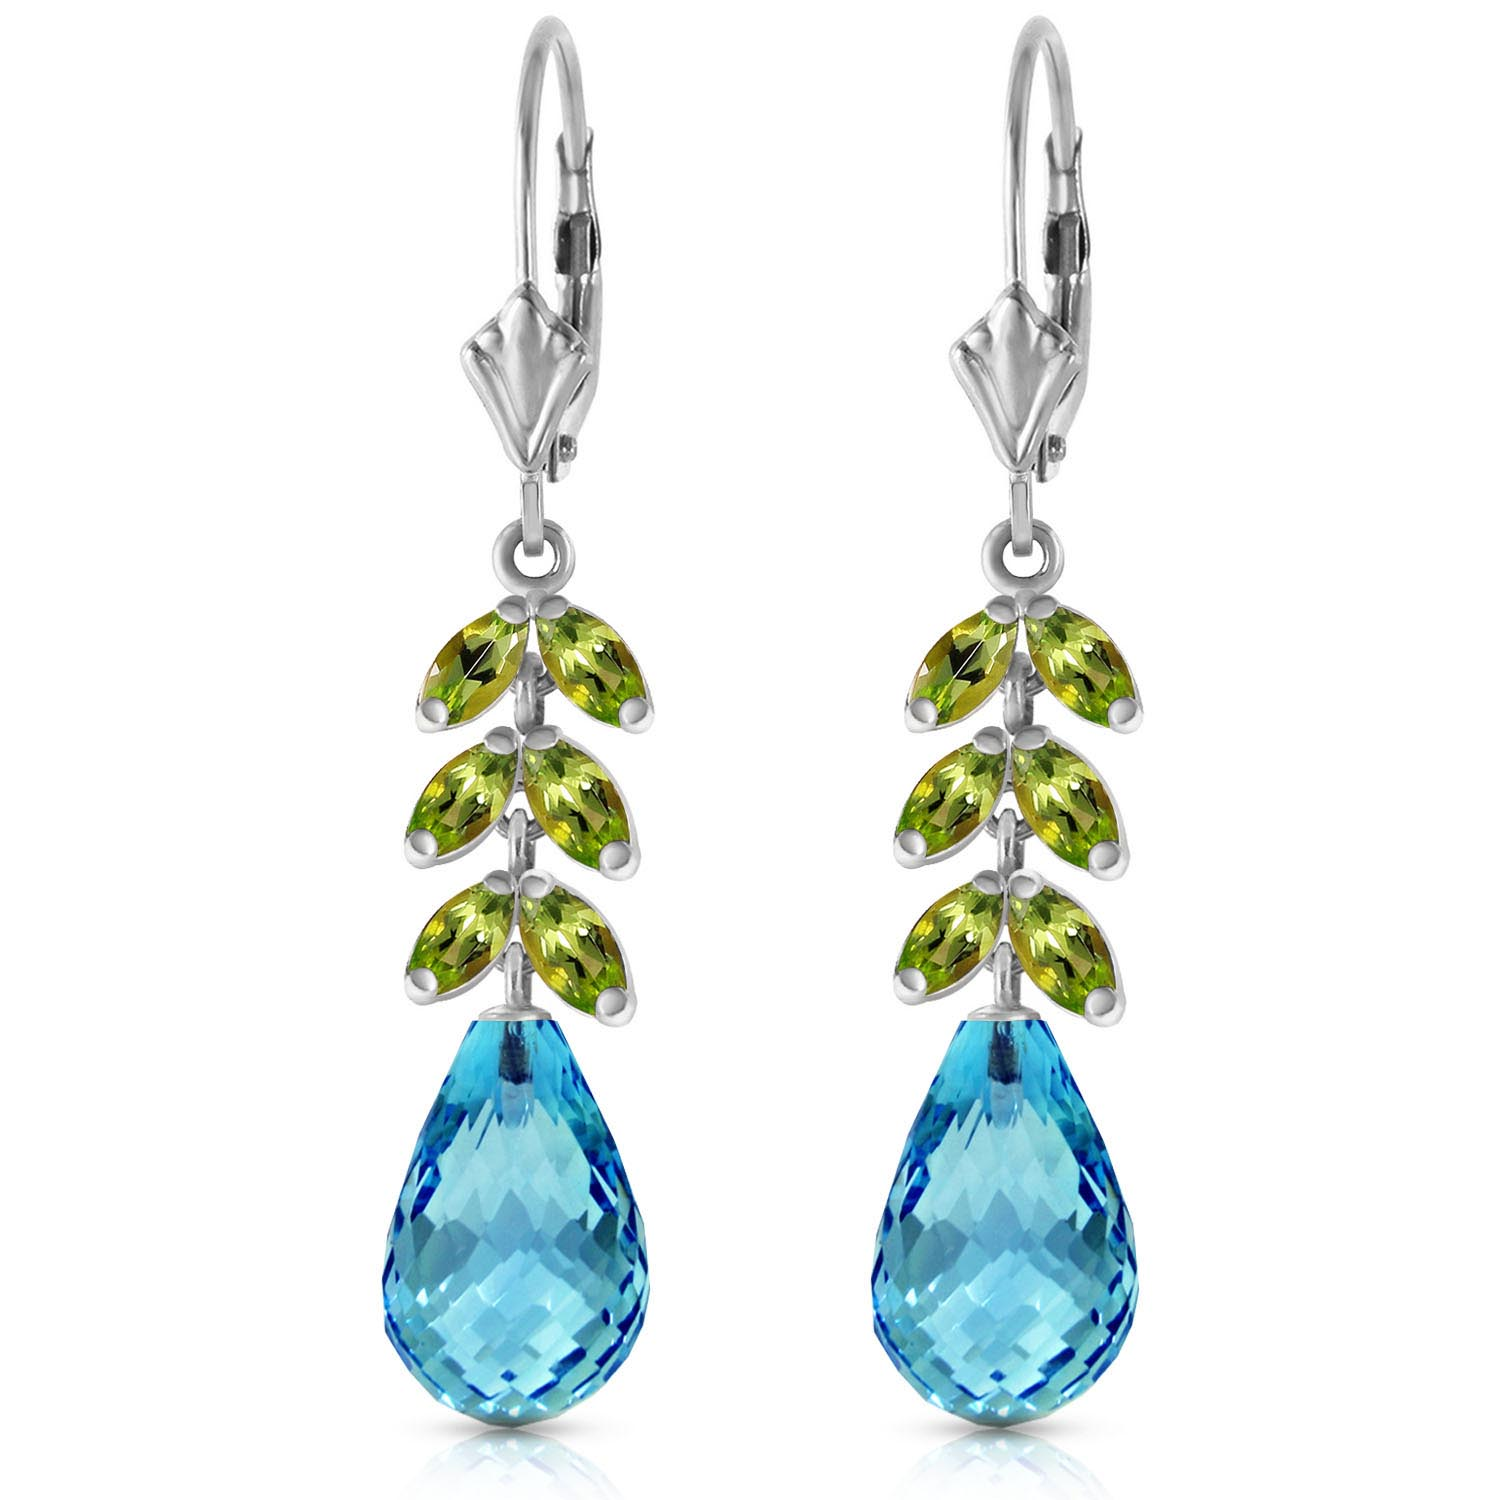 Blue Topaz and Peridot Drop Earrings 11.2ctw in 9ct White Gold